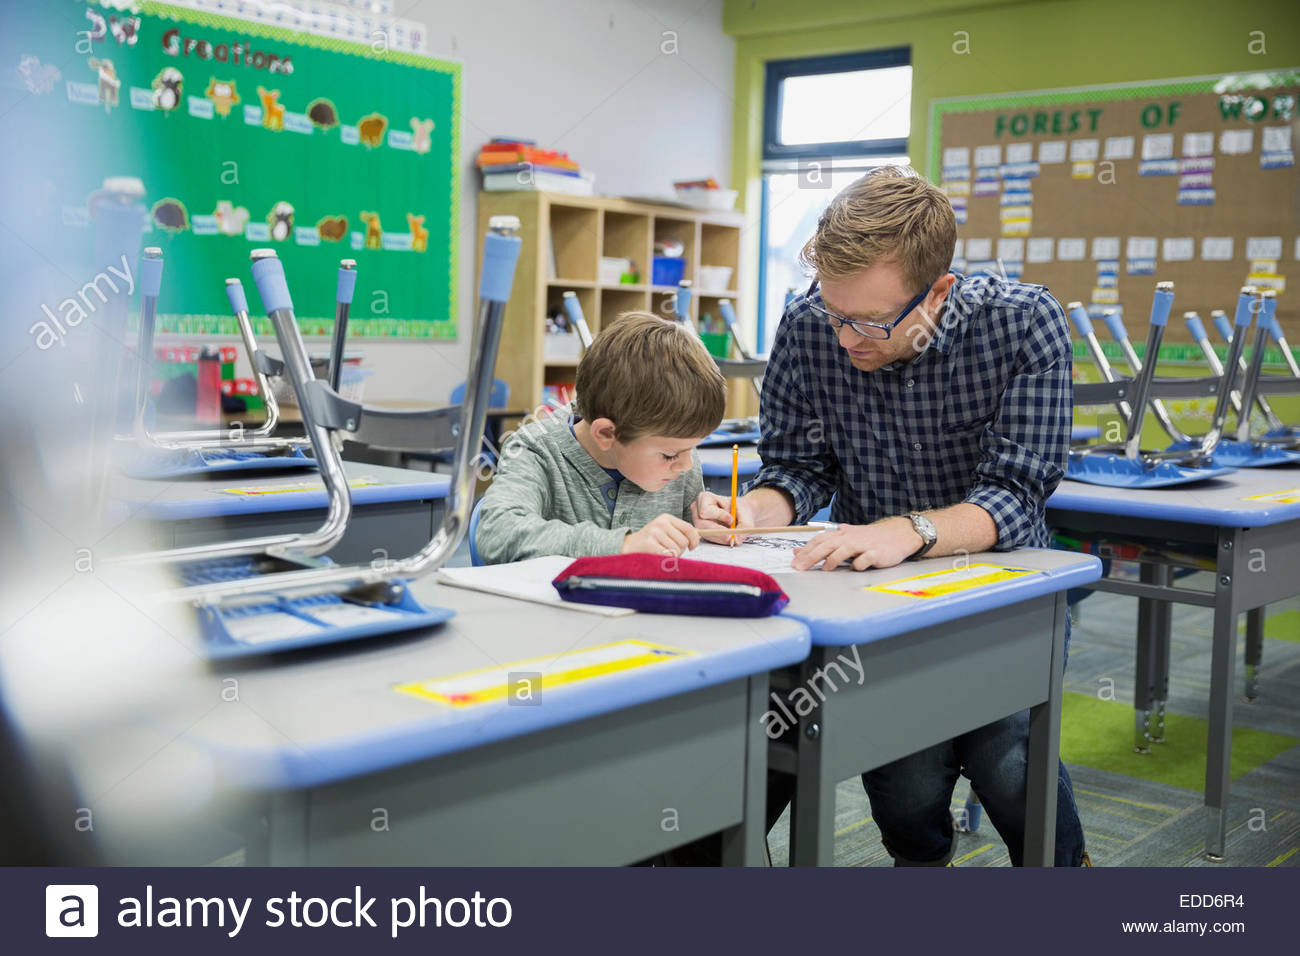 Teacher helping elementary student in classroom - Stock Image